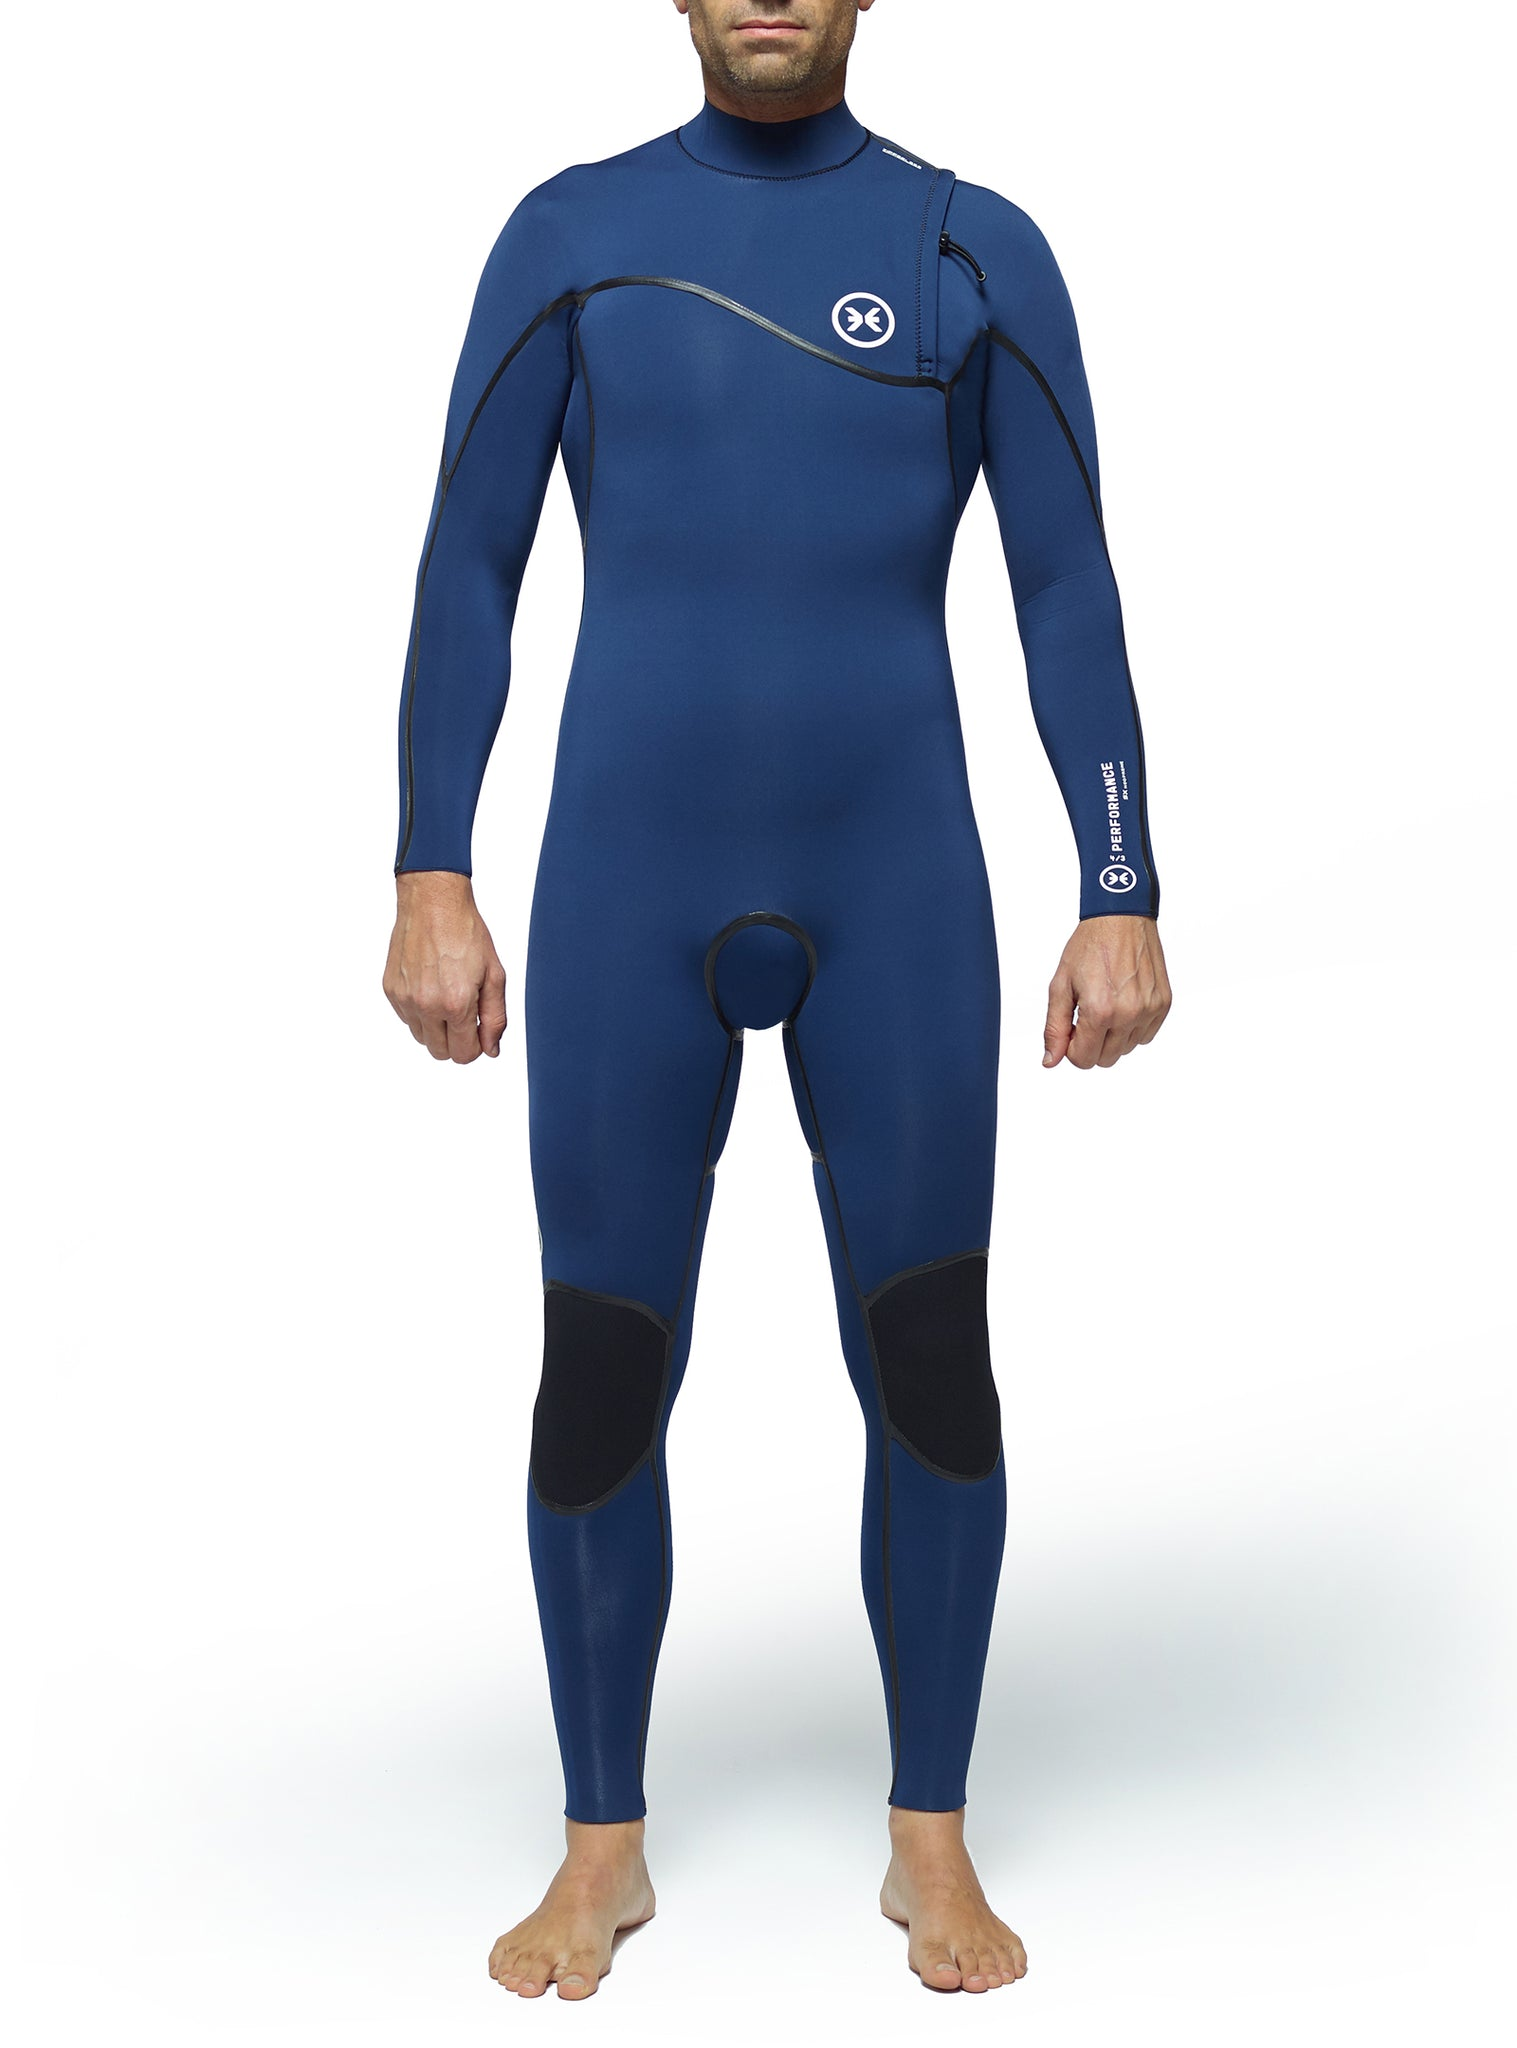 Wetsuit Man Performance 4/3 Zipperless Navy Blue